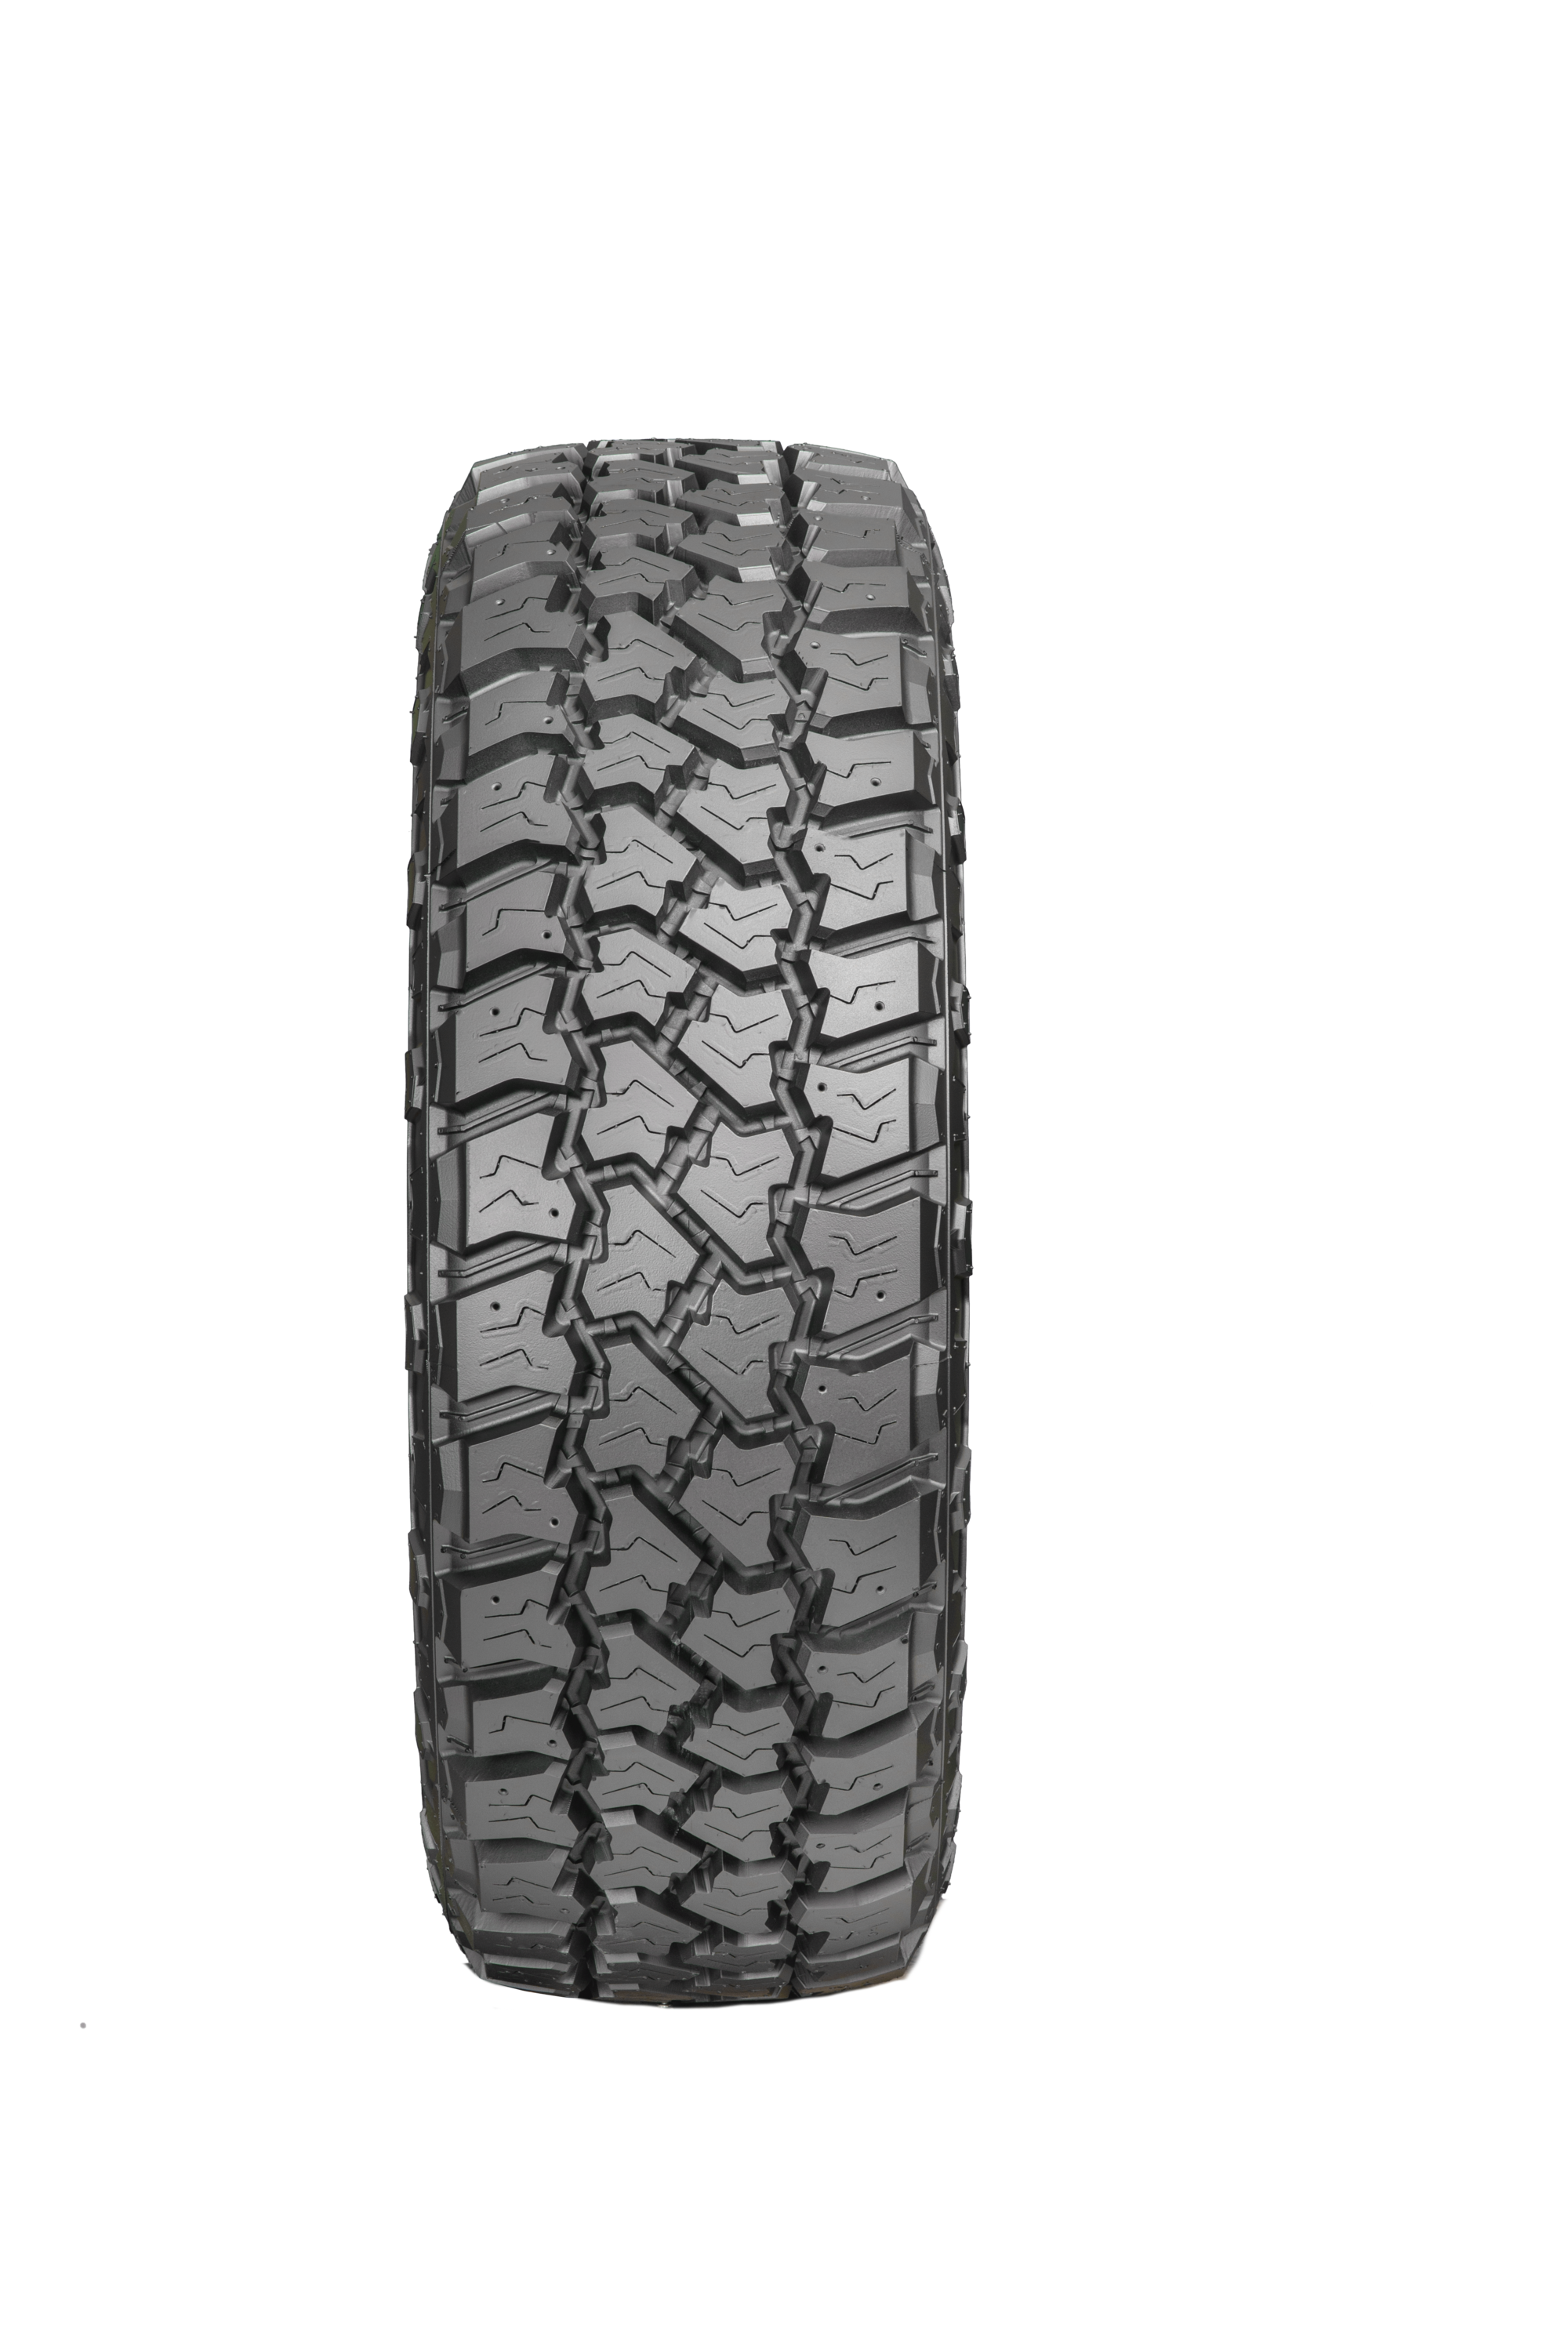 Mastercraft Courser CXT 255/85R16 123 Q Tire